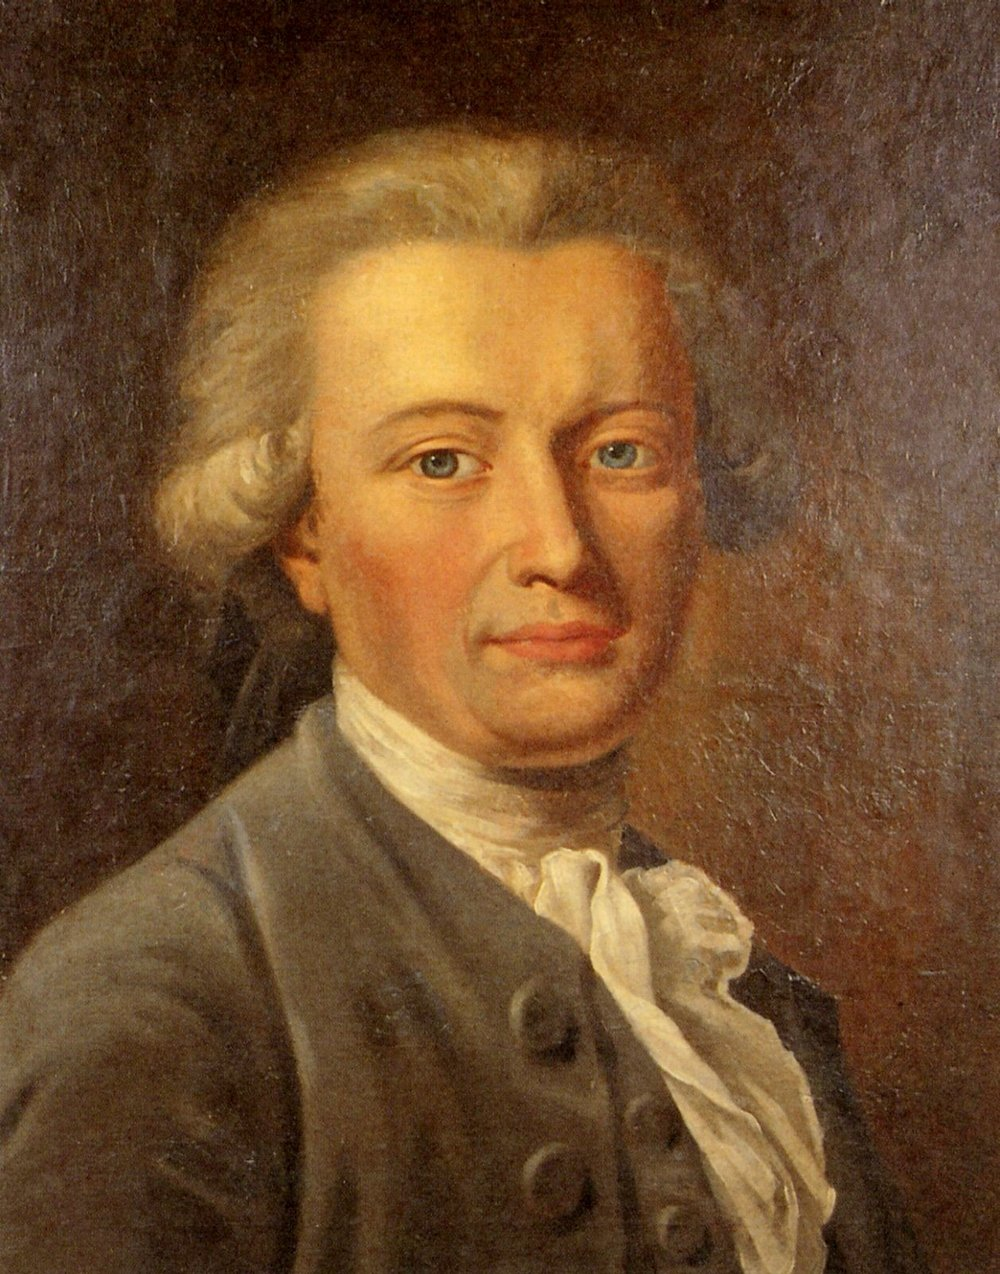 Johann Heinrich Wilhelm Tischbein (also ascribed to Anton Graff), Portrait of Georg Forster (Member of the Gold and Rosy Cross), circa 1785